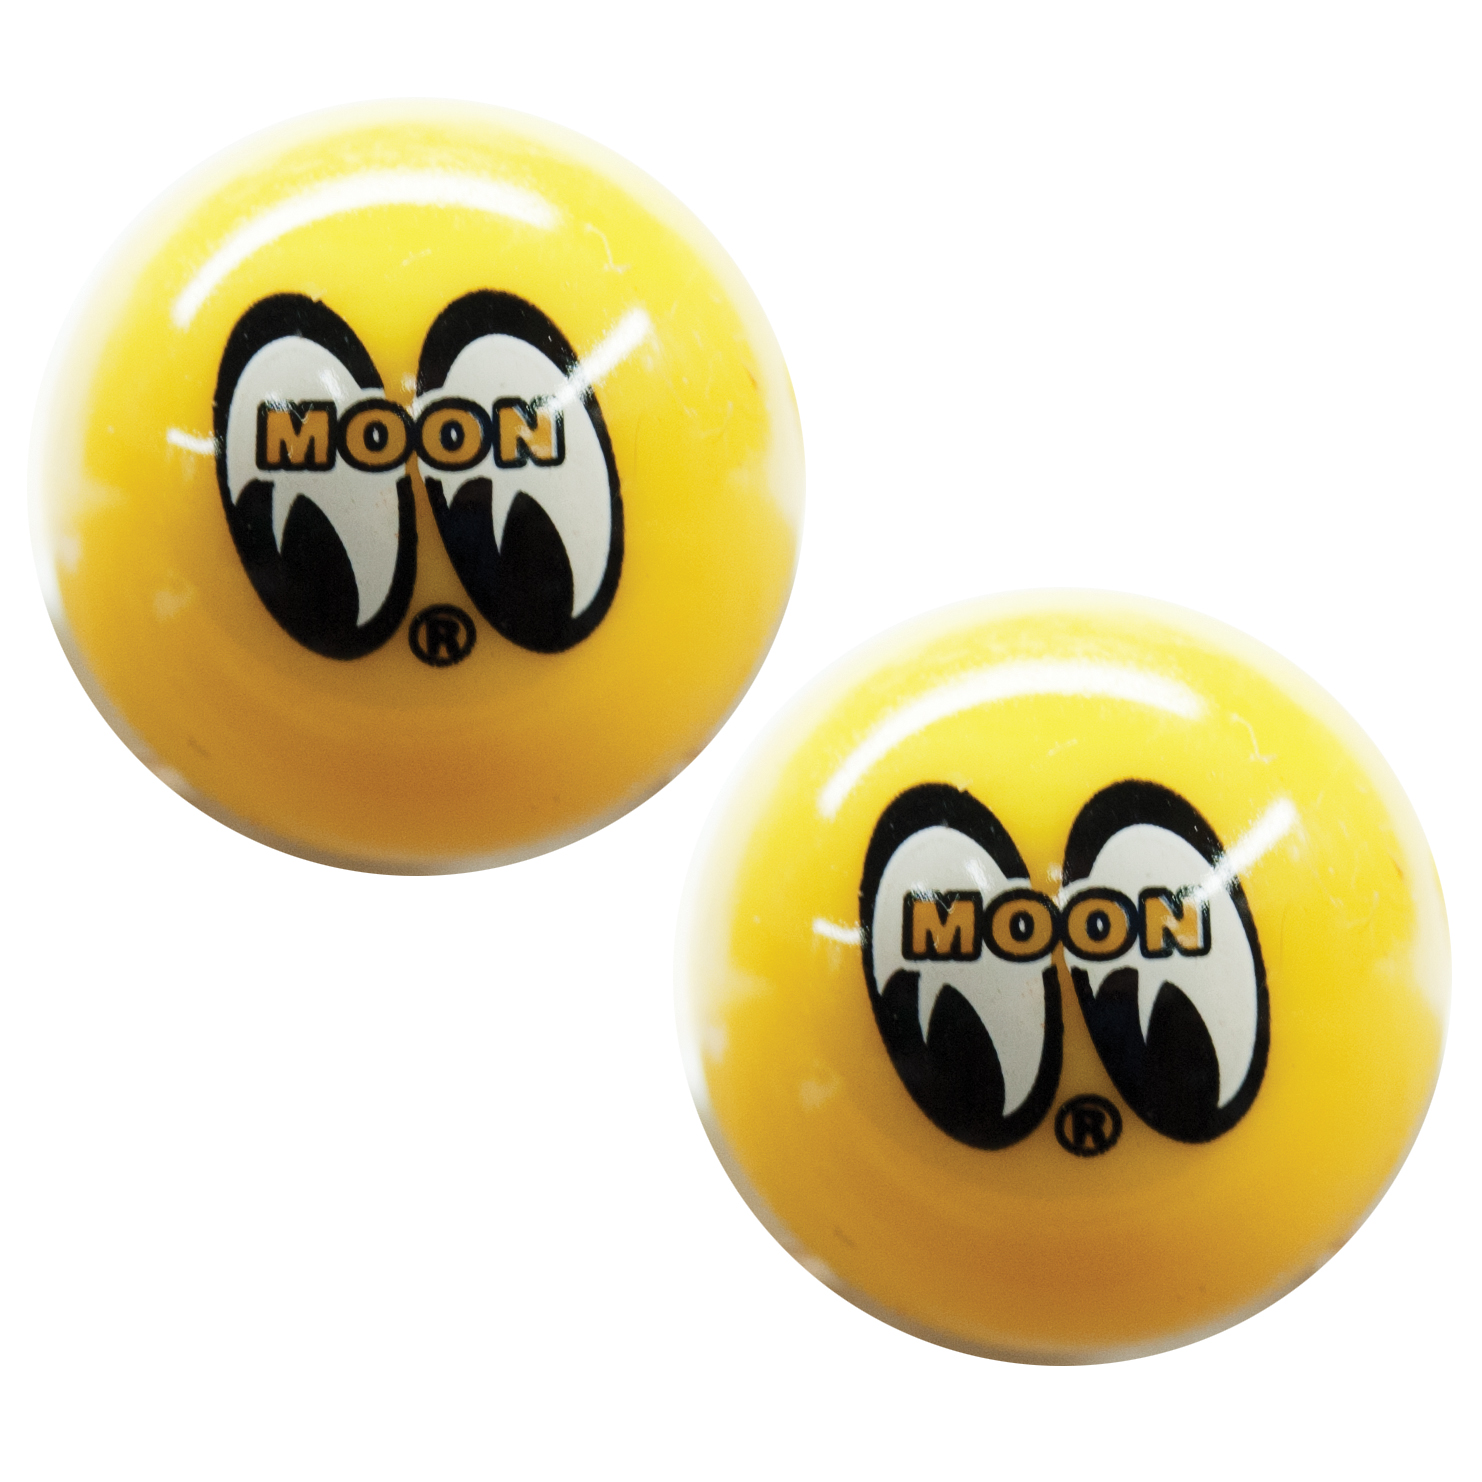 Moon Yellow Ball Valve Caps